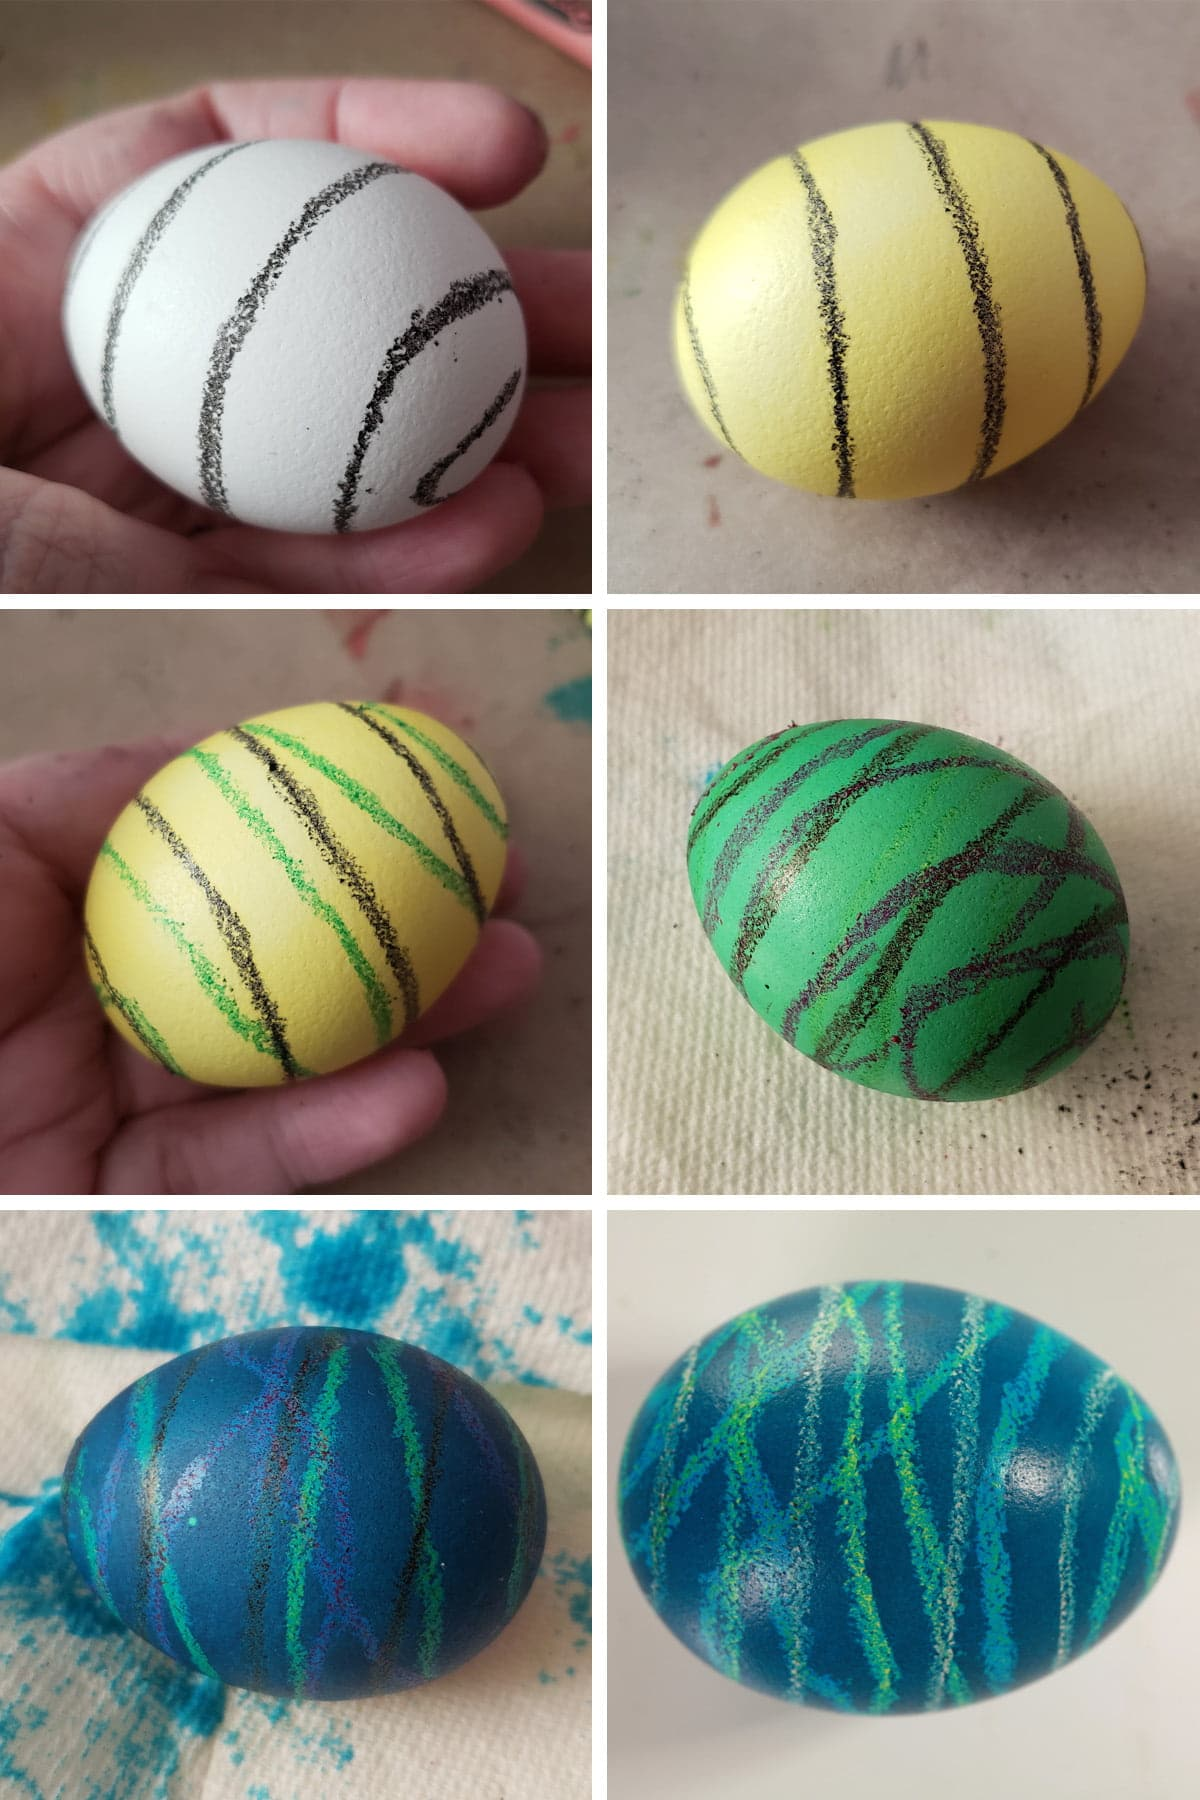 A 6 part compilation image showing the progression from a white egg with a black crayon spiral design drawn on it, through yellow, green, and blue dye steps.